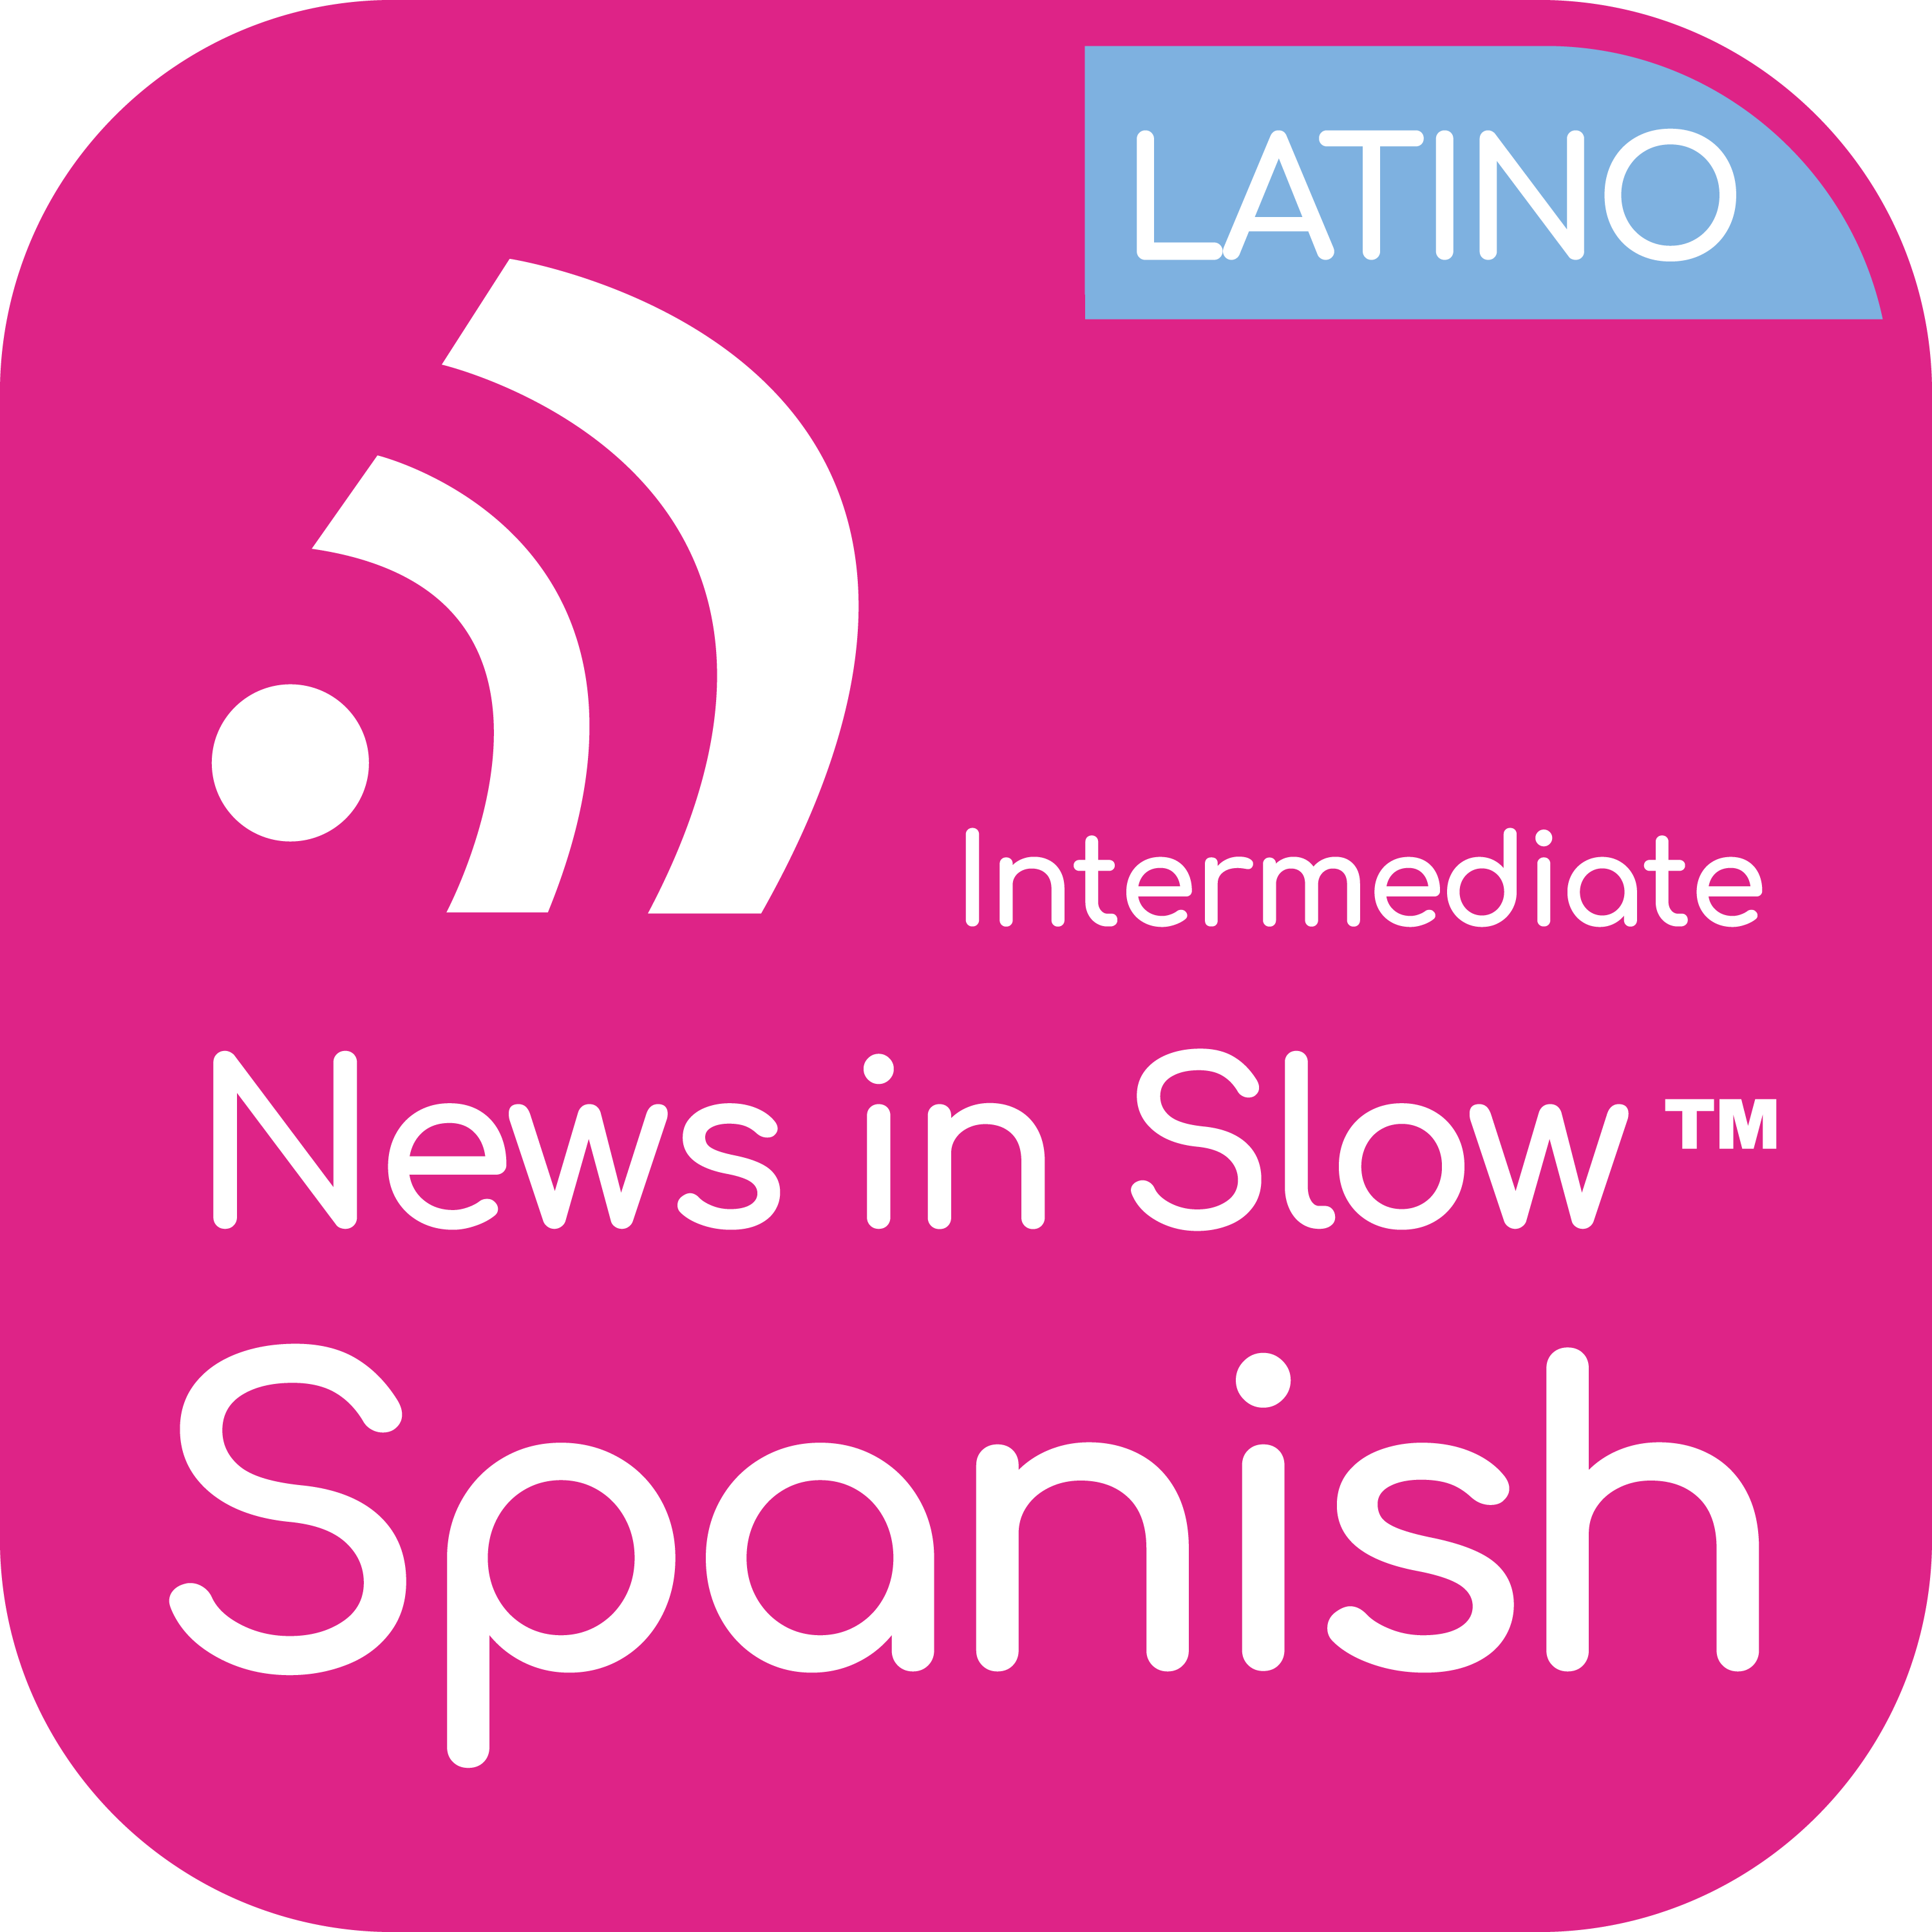 News In Slow Spanish Latino #381 - Study Spanish while Listening to the News